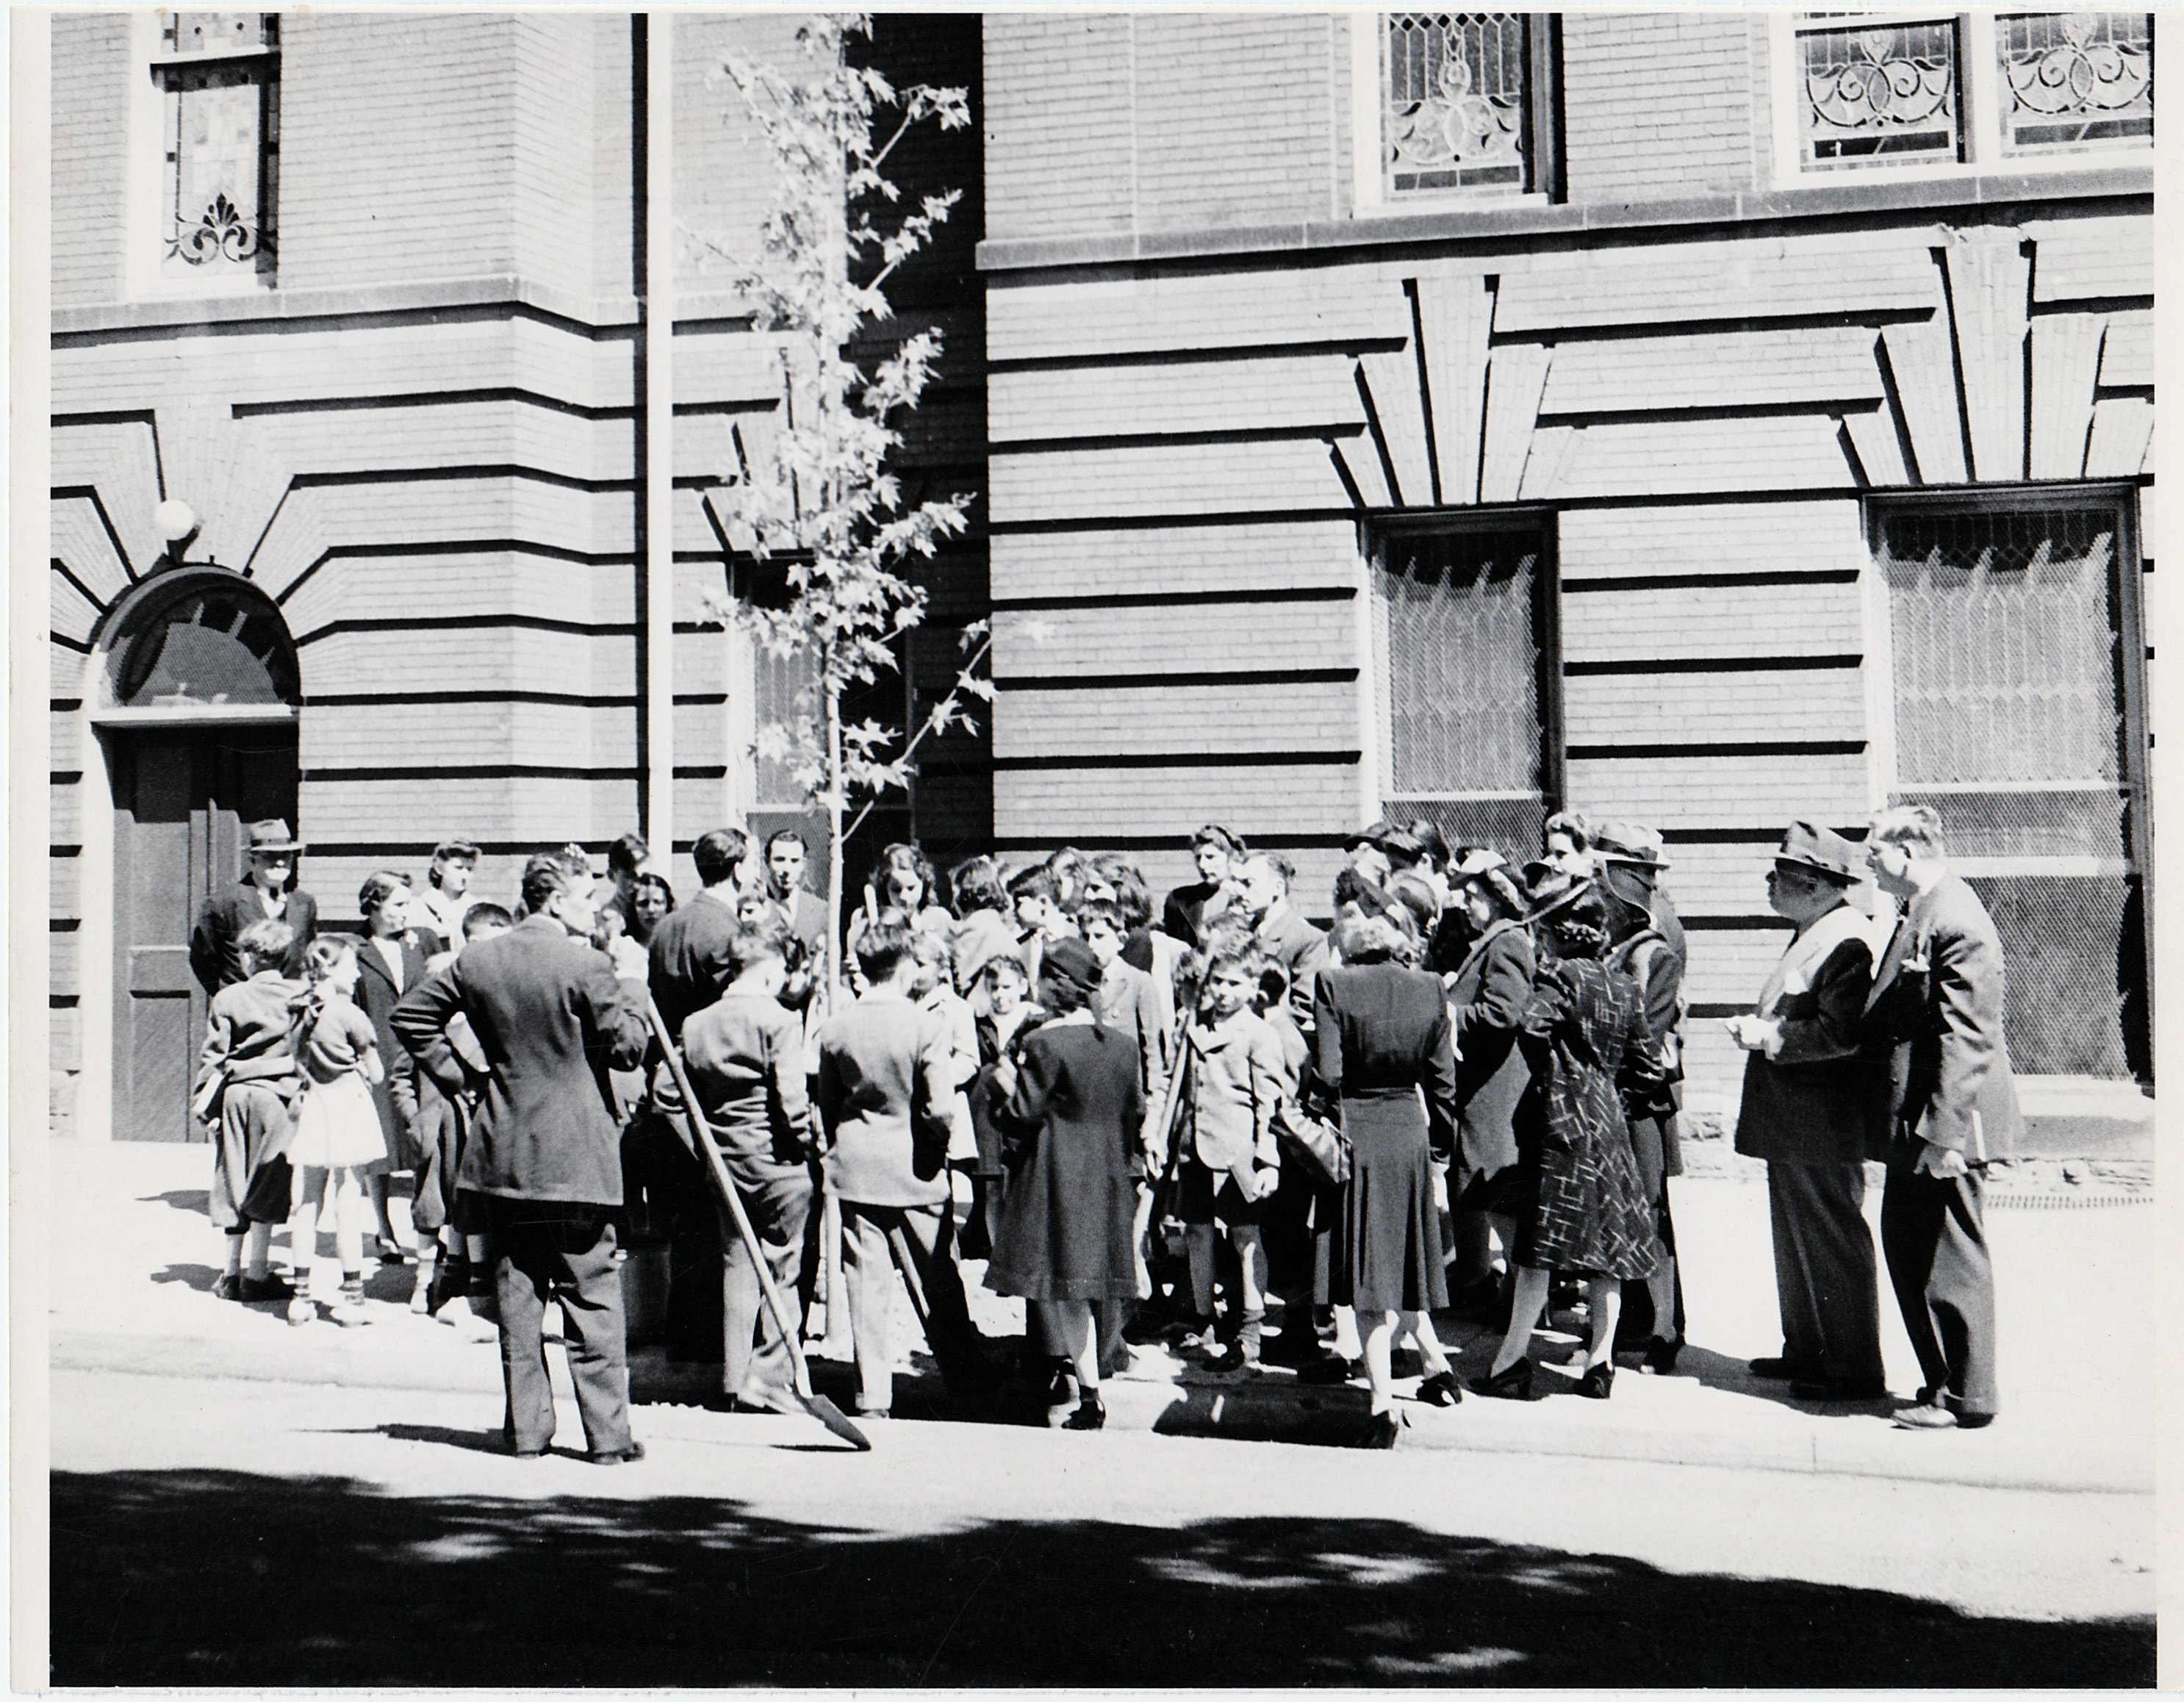 1940 Planting trees along James St. Rabbi Davis, view 1 note old James Street entrance